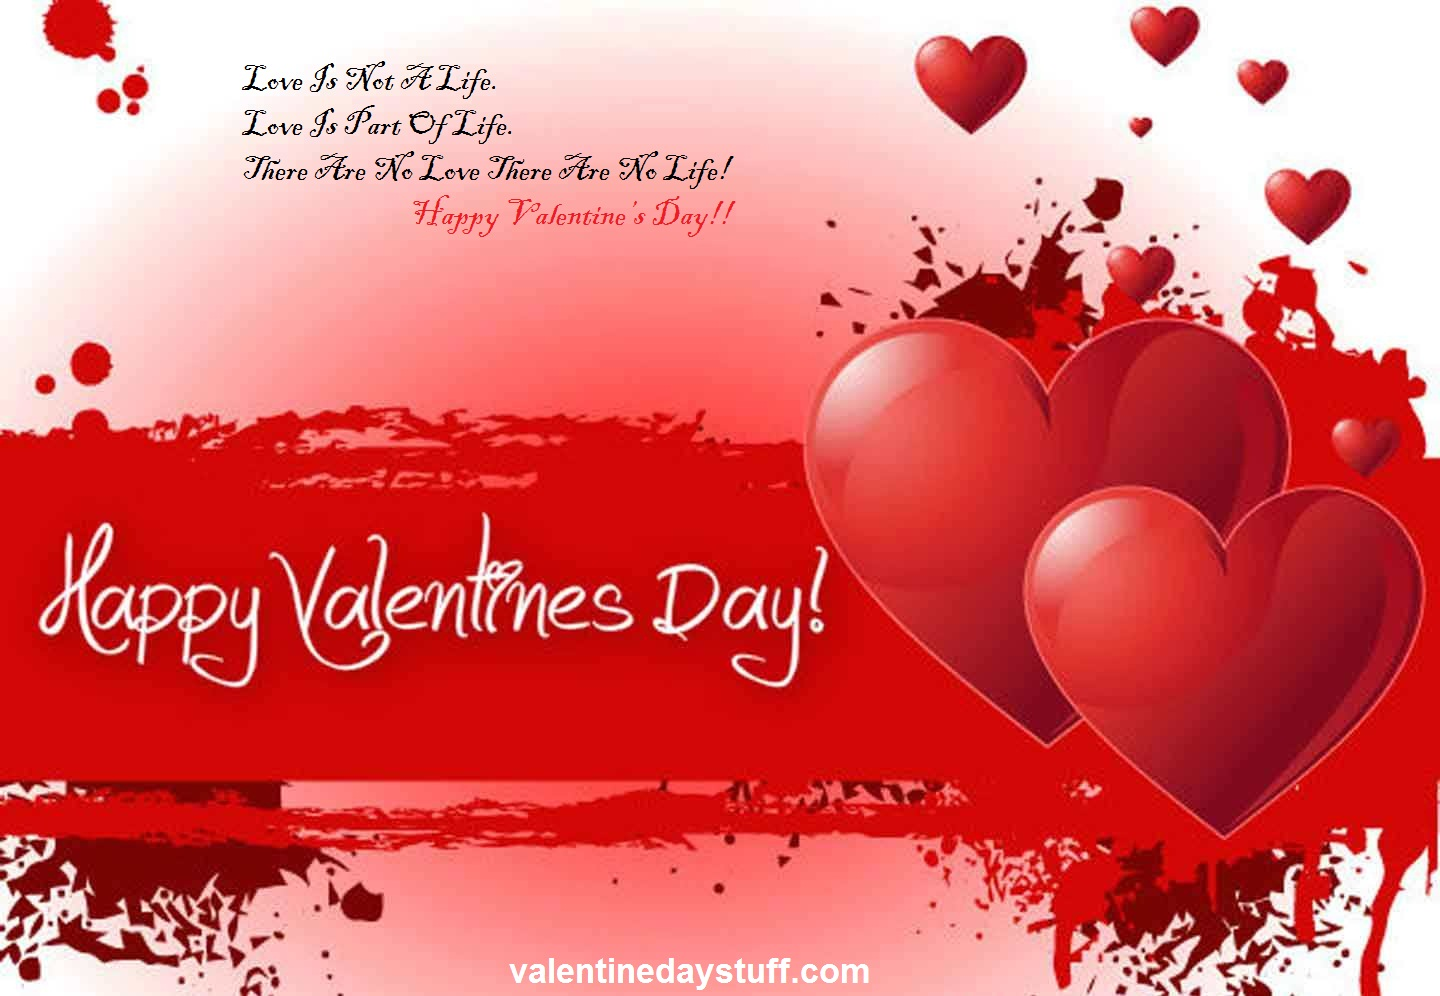 Happy valentines day greeting cards 2018 free download techicy download valentine day greeting card m4hsunfo Images